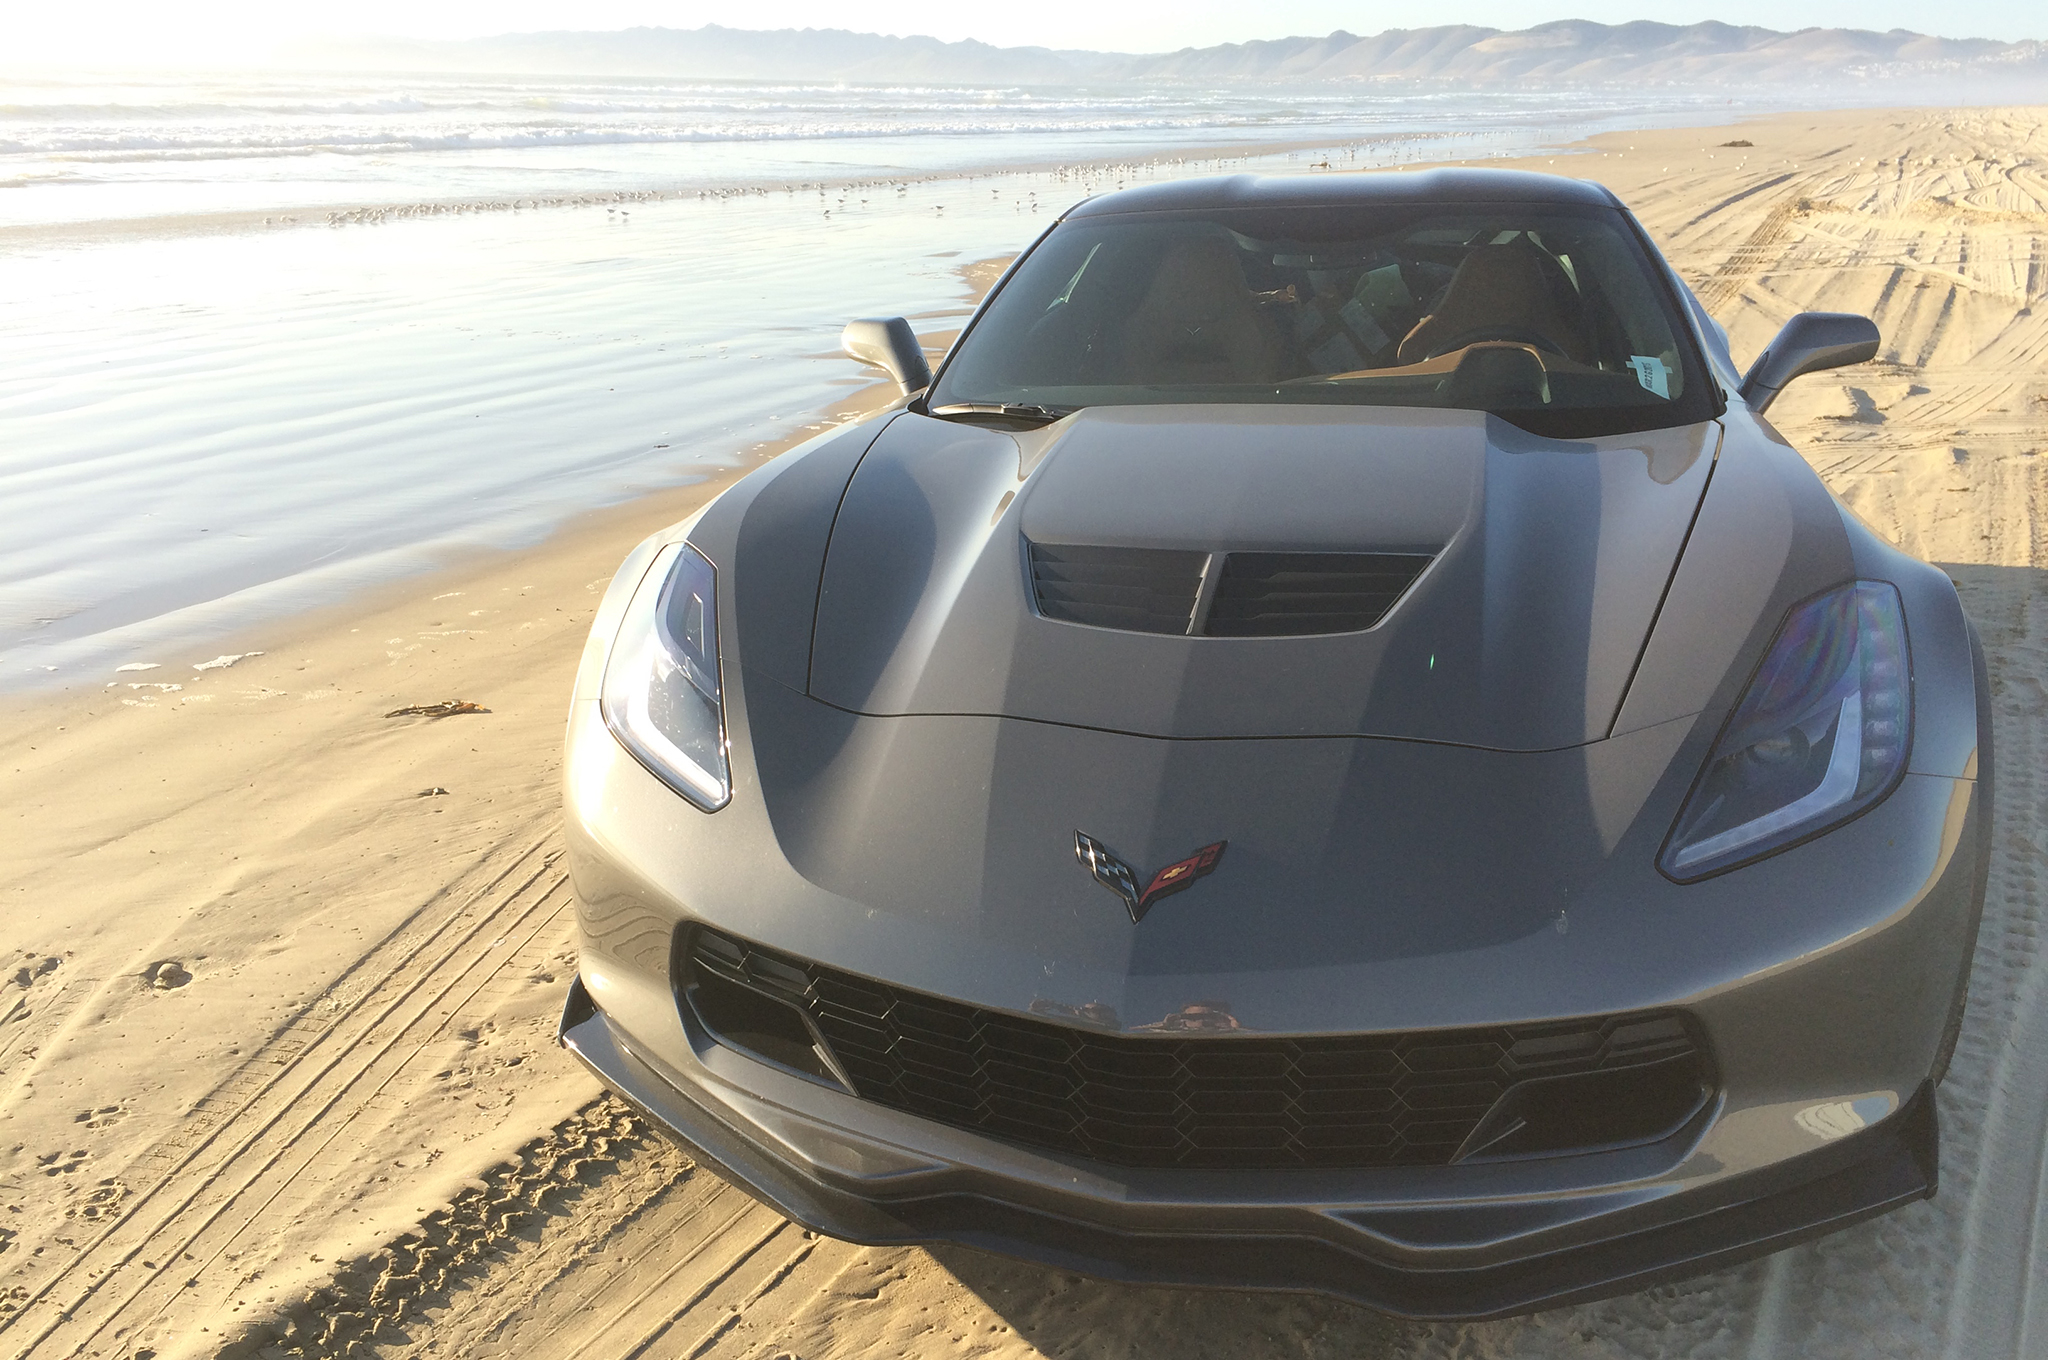 """Thanks to the 335mm wide rear Michelins and the LT4's supercharged power (does the """"L"""" stand for leviathan?), packed wet sand is no problem for a Z06."""